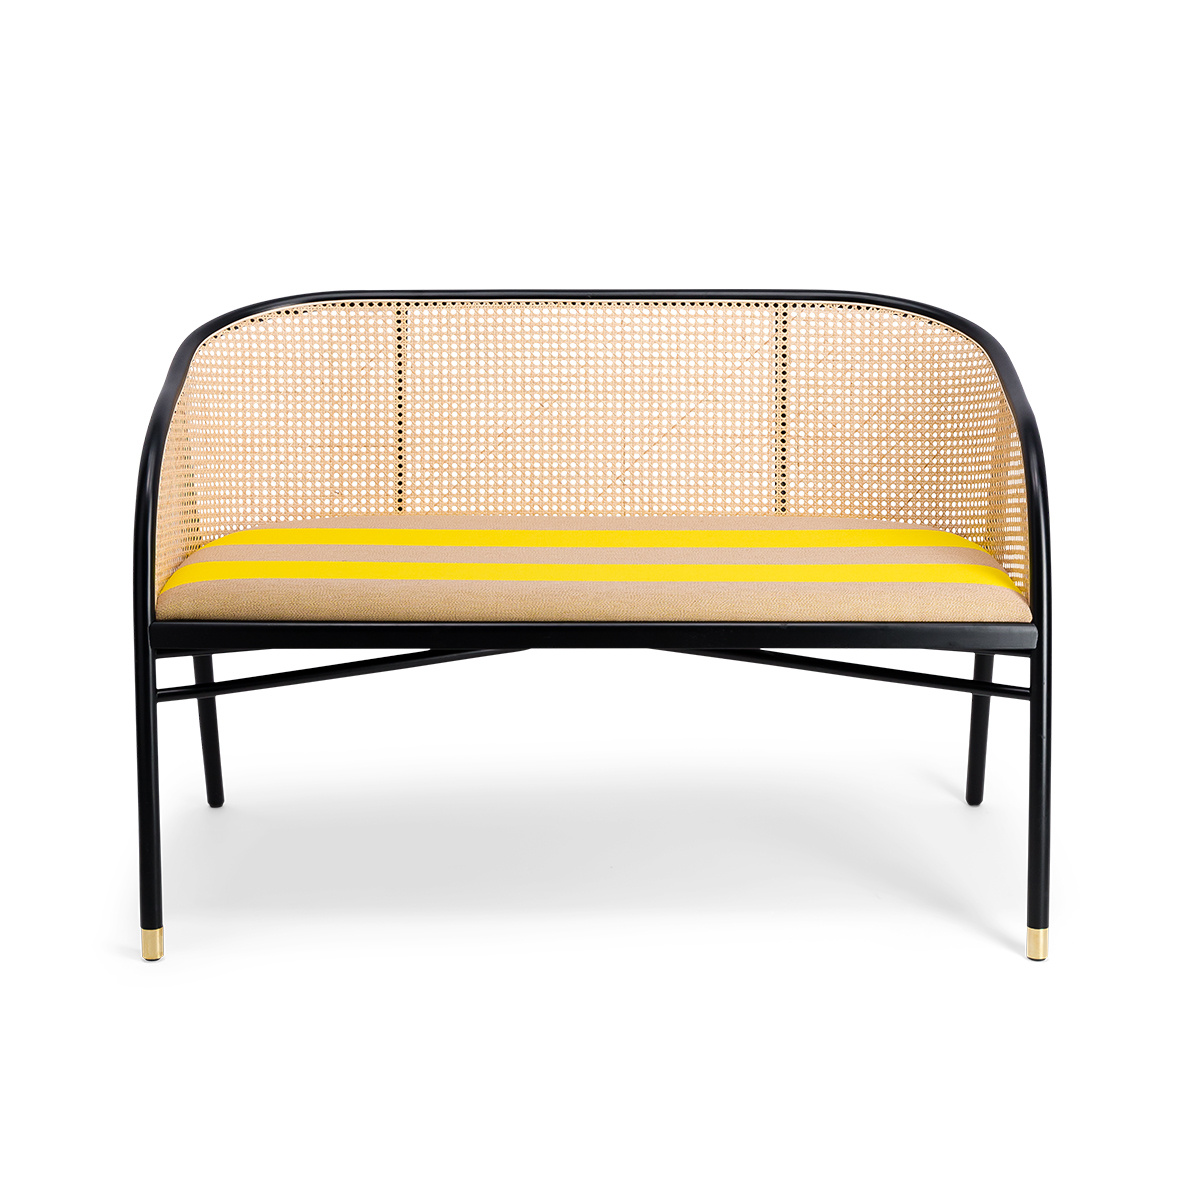 Cavallo Sofa, Kvadrat / Raf Simons Yellow Wool with Black Lacquered Beechwood Frame - Limited Edition